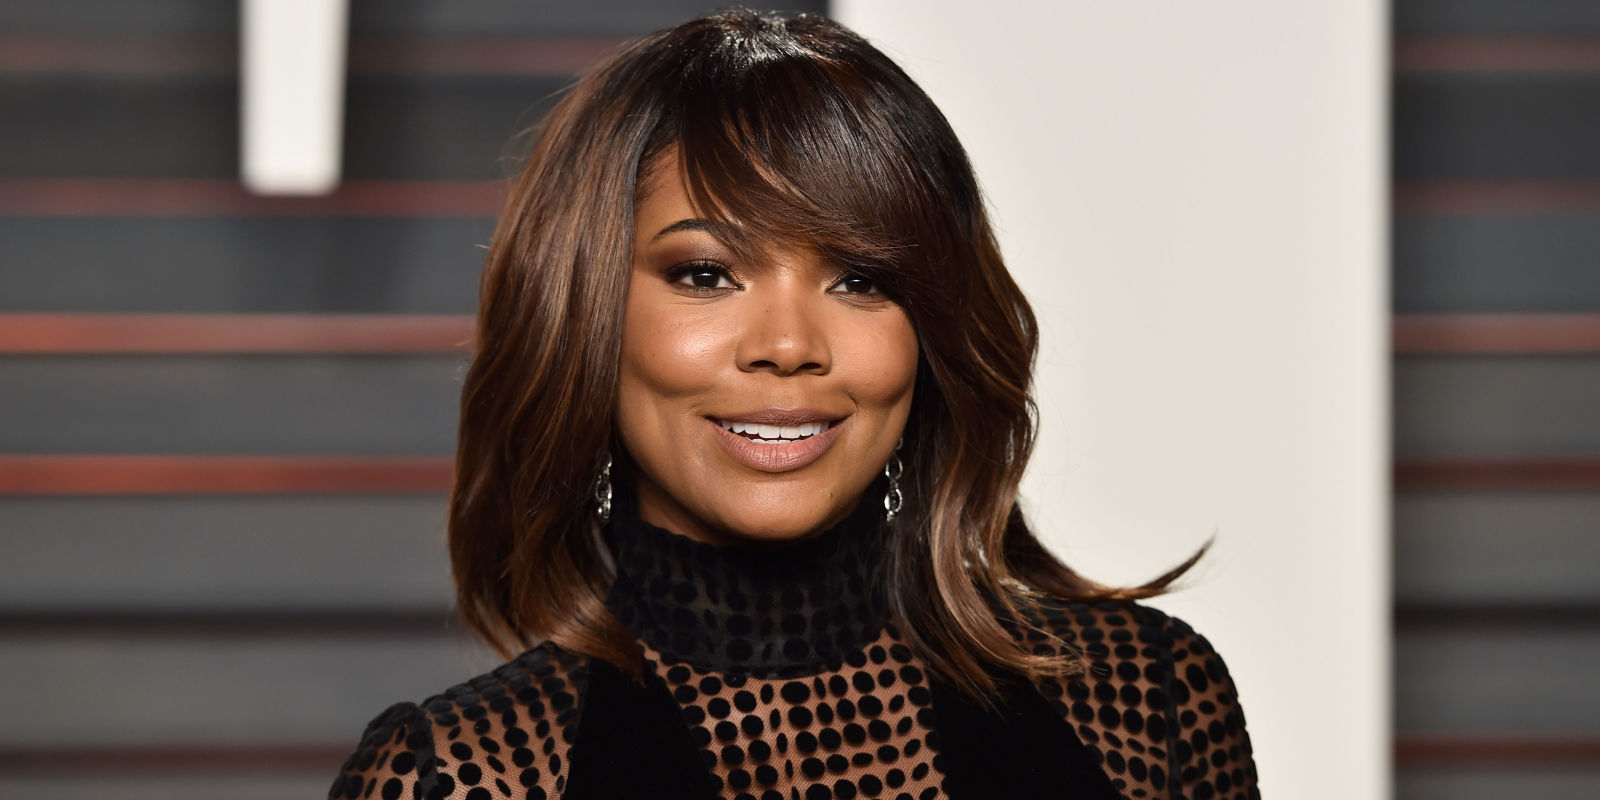 Sensational Gabrielle Union Is Launching A Hair Care Brand For Natural Hair Short Hairstyles For Black Women Fulllsitofus